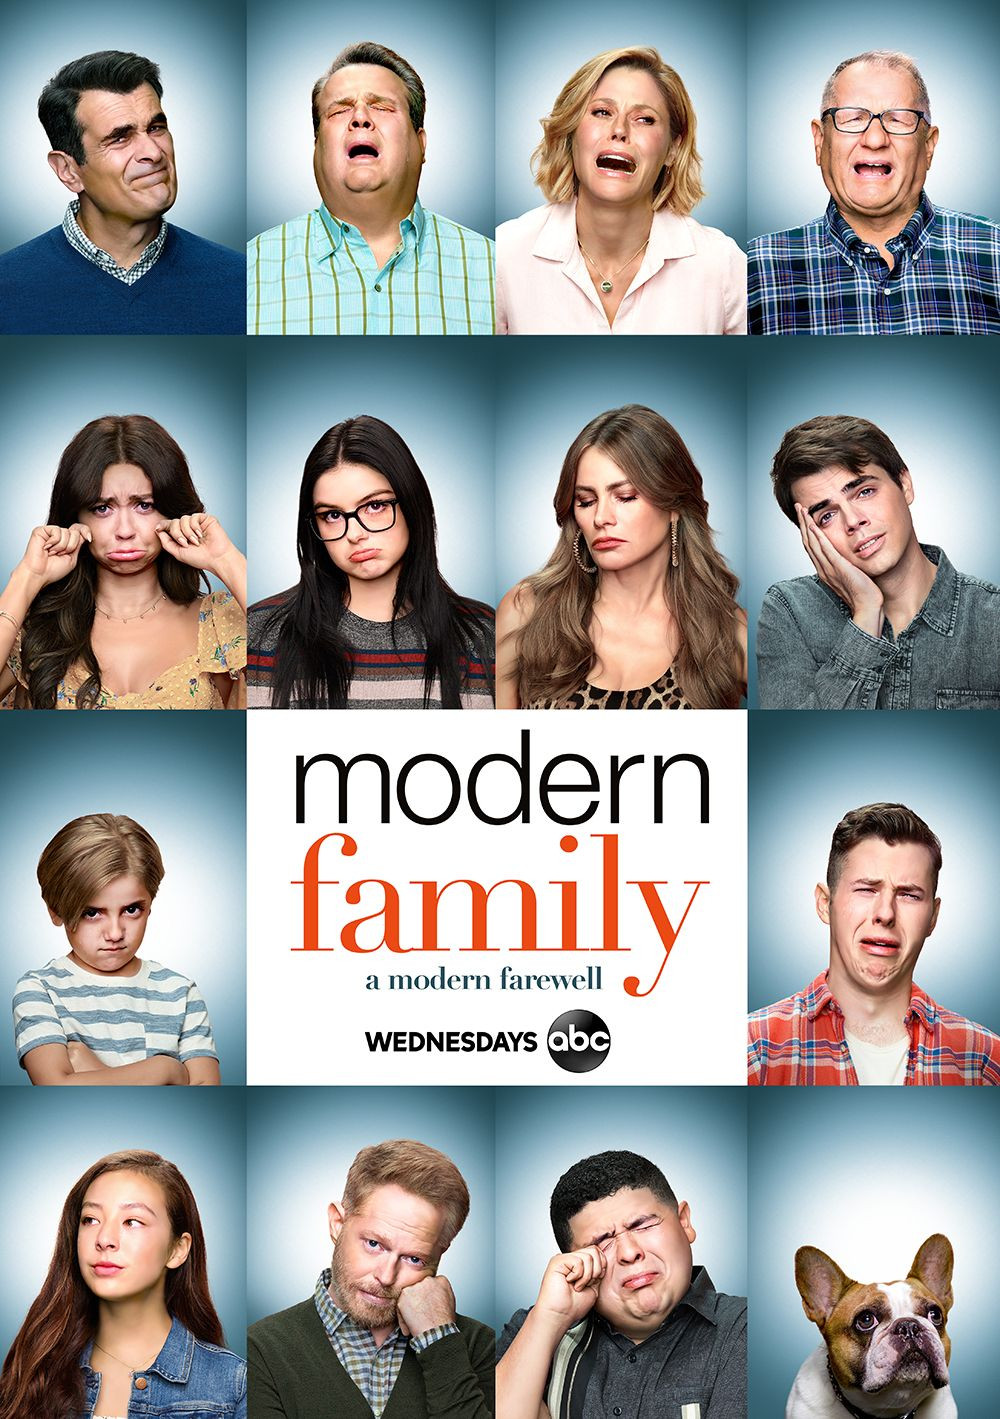 EMPTY NESTERS FINALLY LAUGHED AND CRIED WITH MODERN FAMILY FOR 11 YEARS SO SHOULD YOU